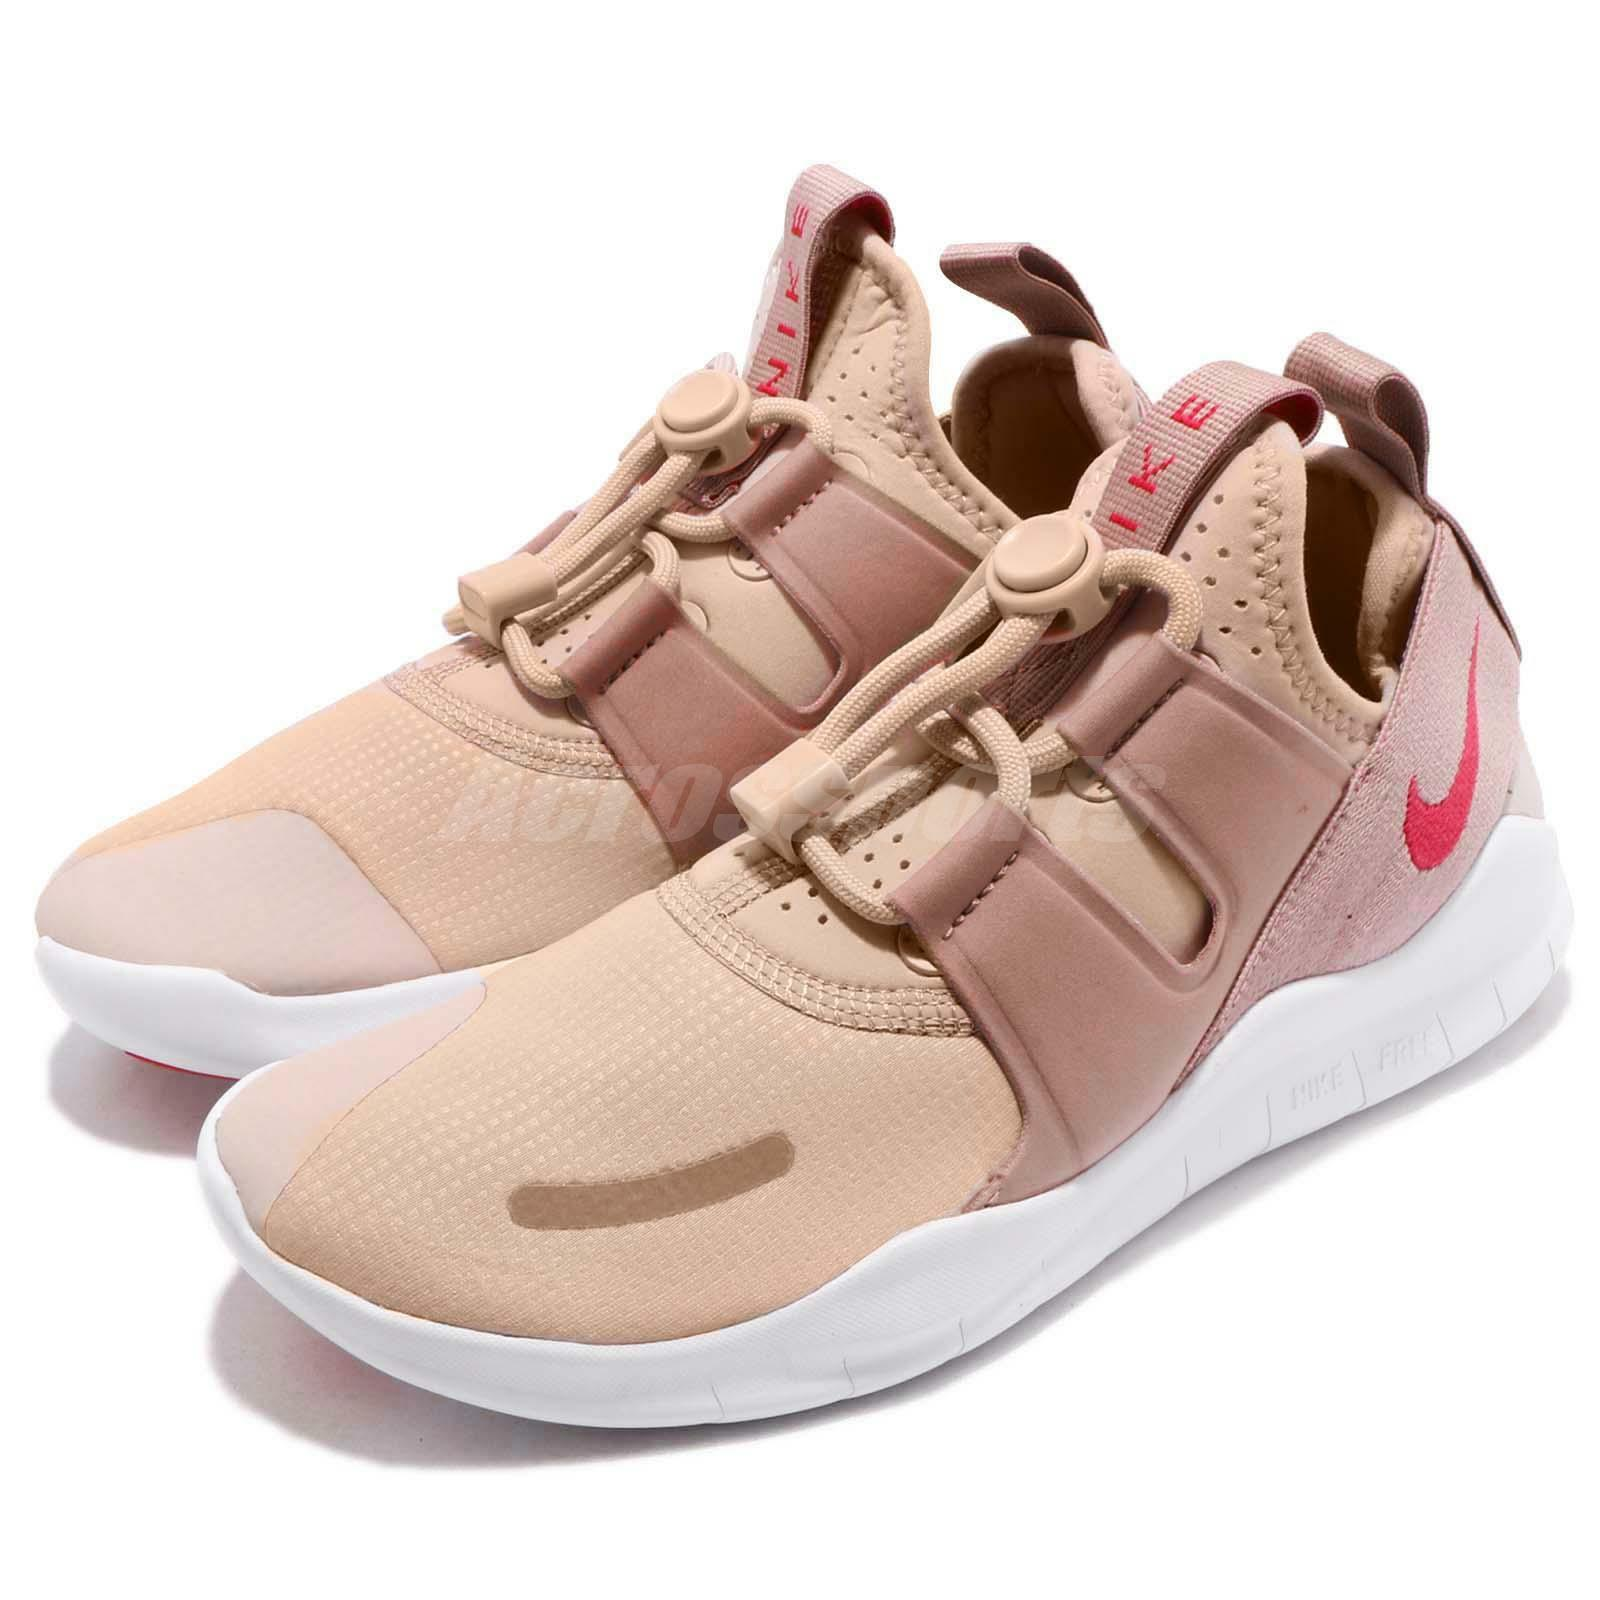 Nike Wmns Free RN CMTR 2018 Beige Pink Womens Lifestyle Running shoes AA1621-200